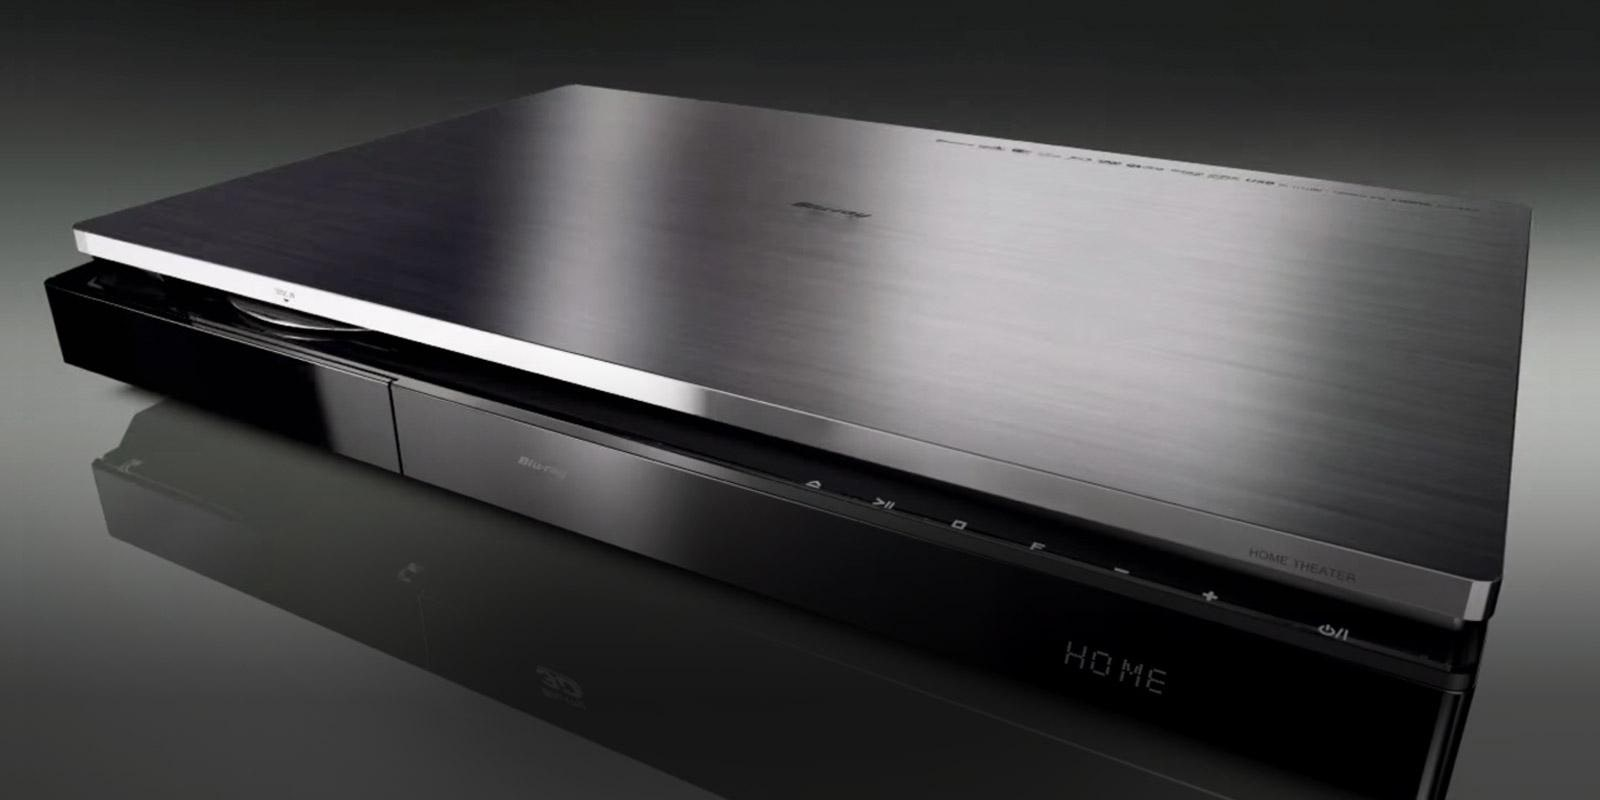 Close-up view of a black and chrome LG Blu-ray player.